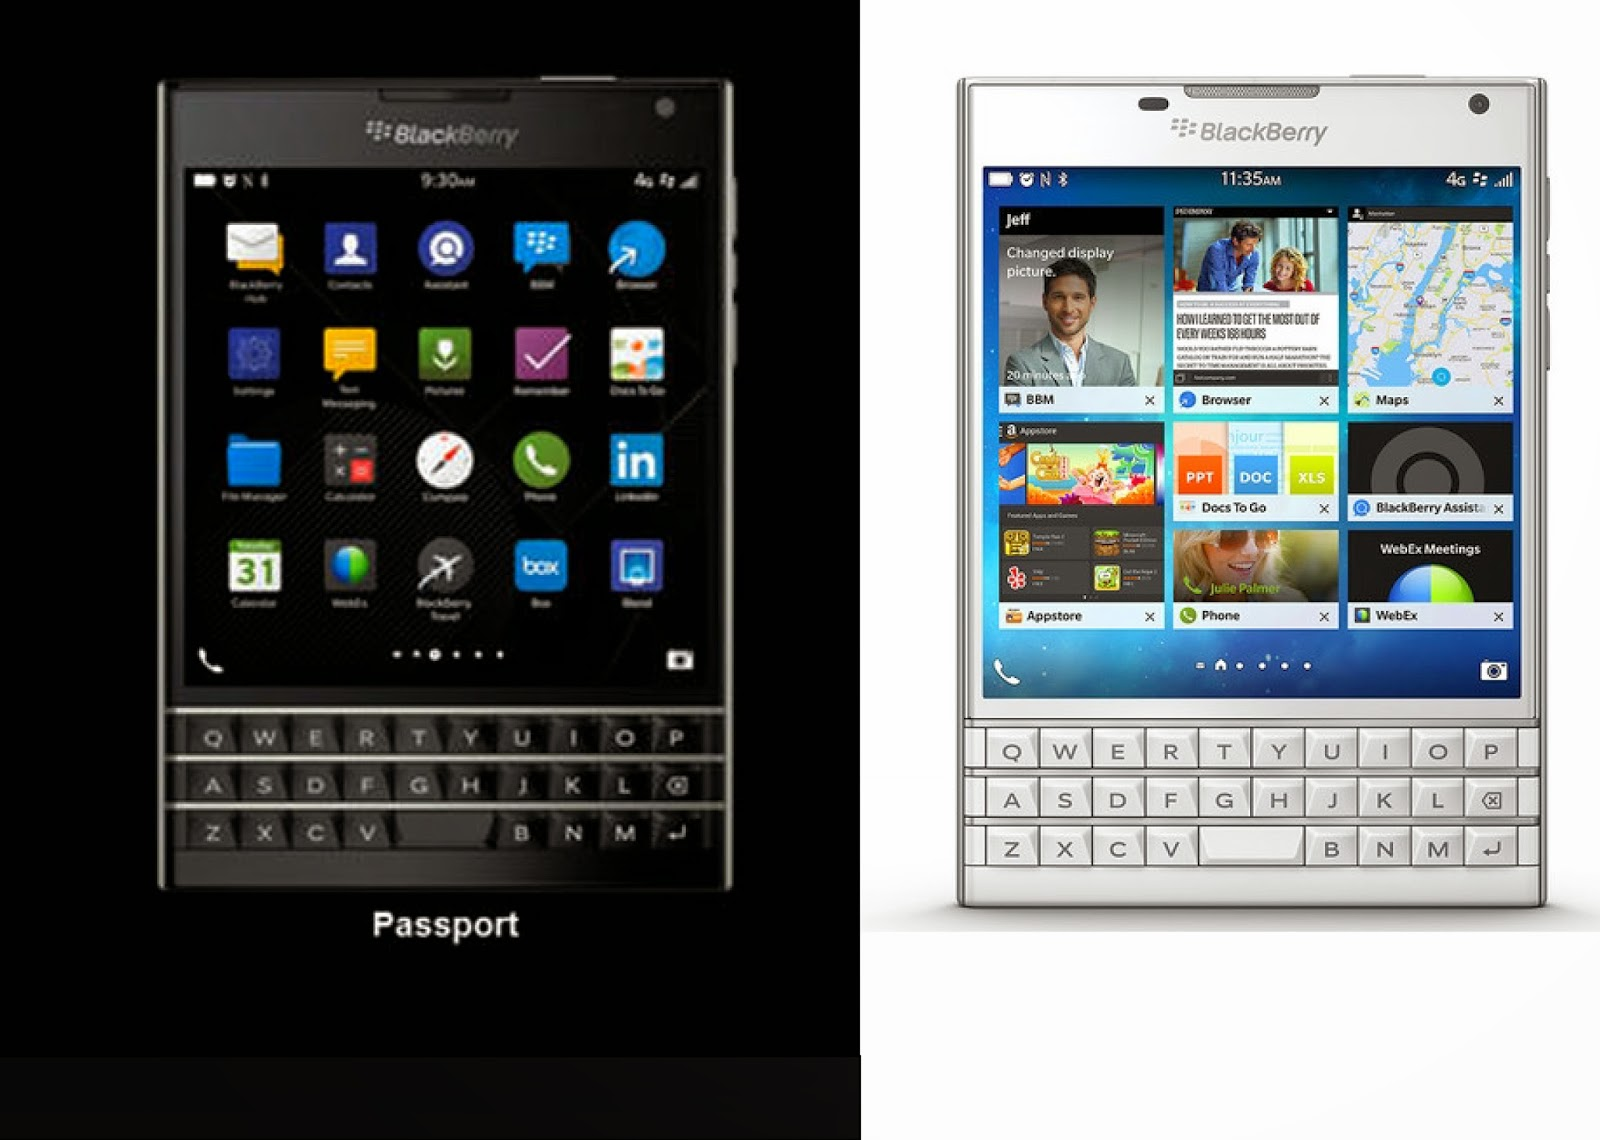 BlackBerry wants you to dump your iPhone and will pay for it